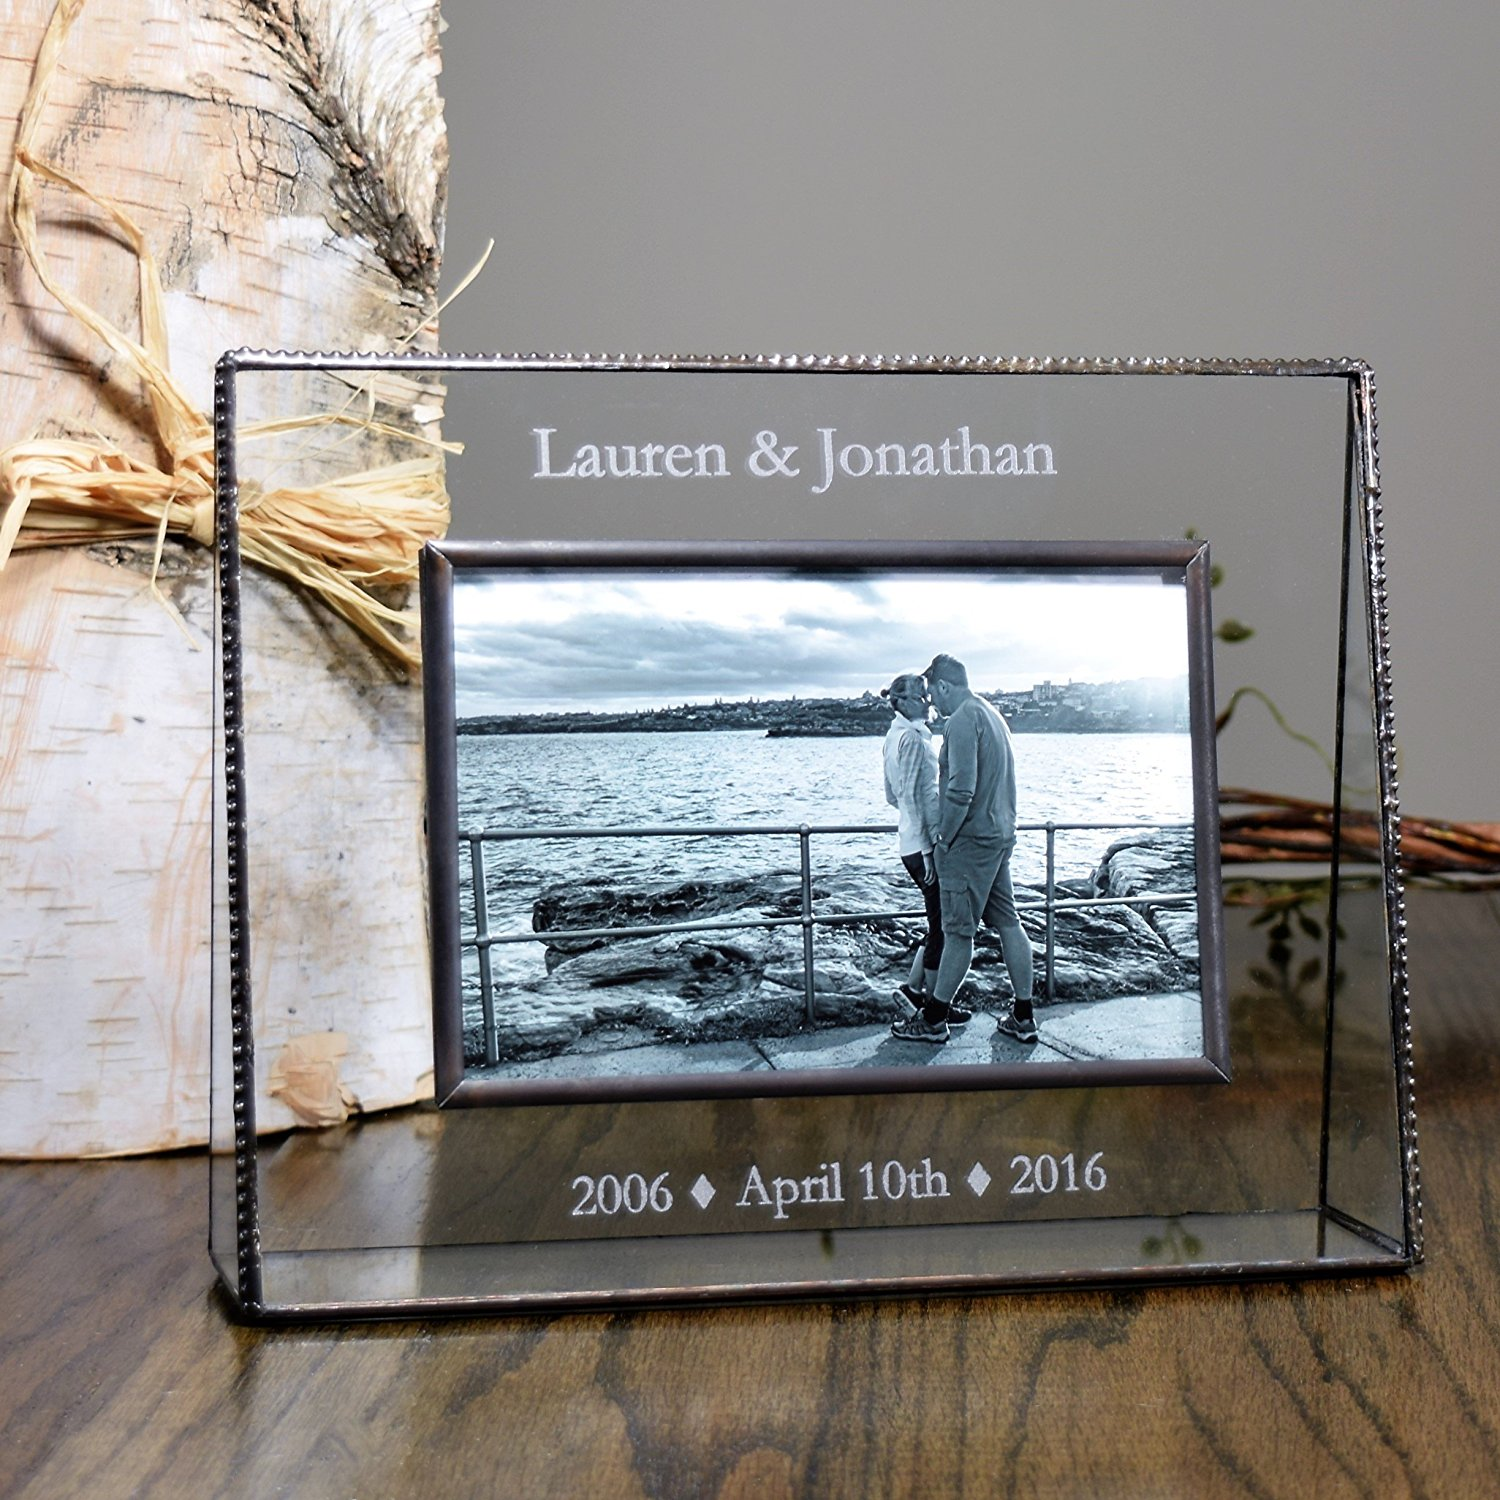 J Devlin Pic 319-57H EP549 Clear Glass Picture Frame Personalized Anniversary Photo Frame for 5x7 Horizontal Landscape Photo Frame